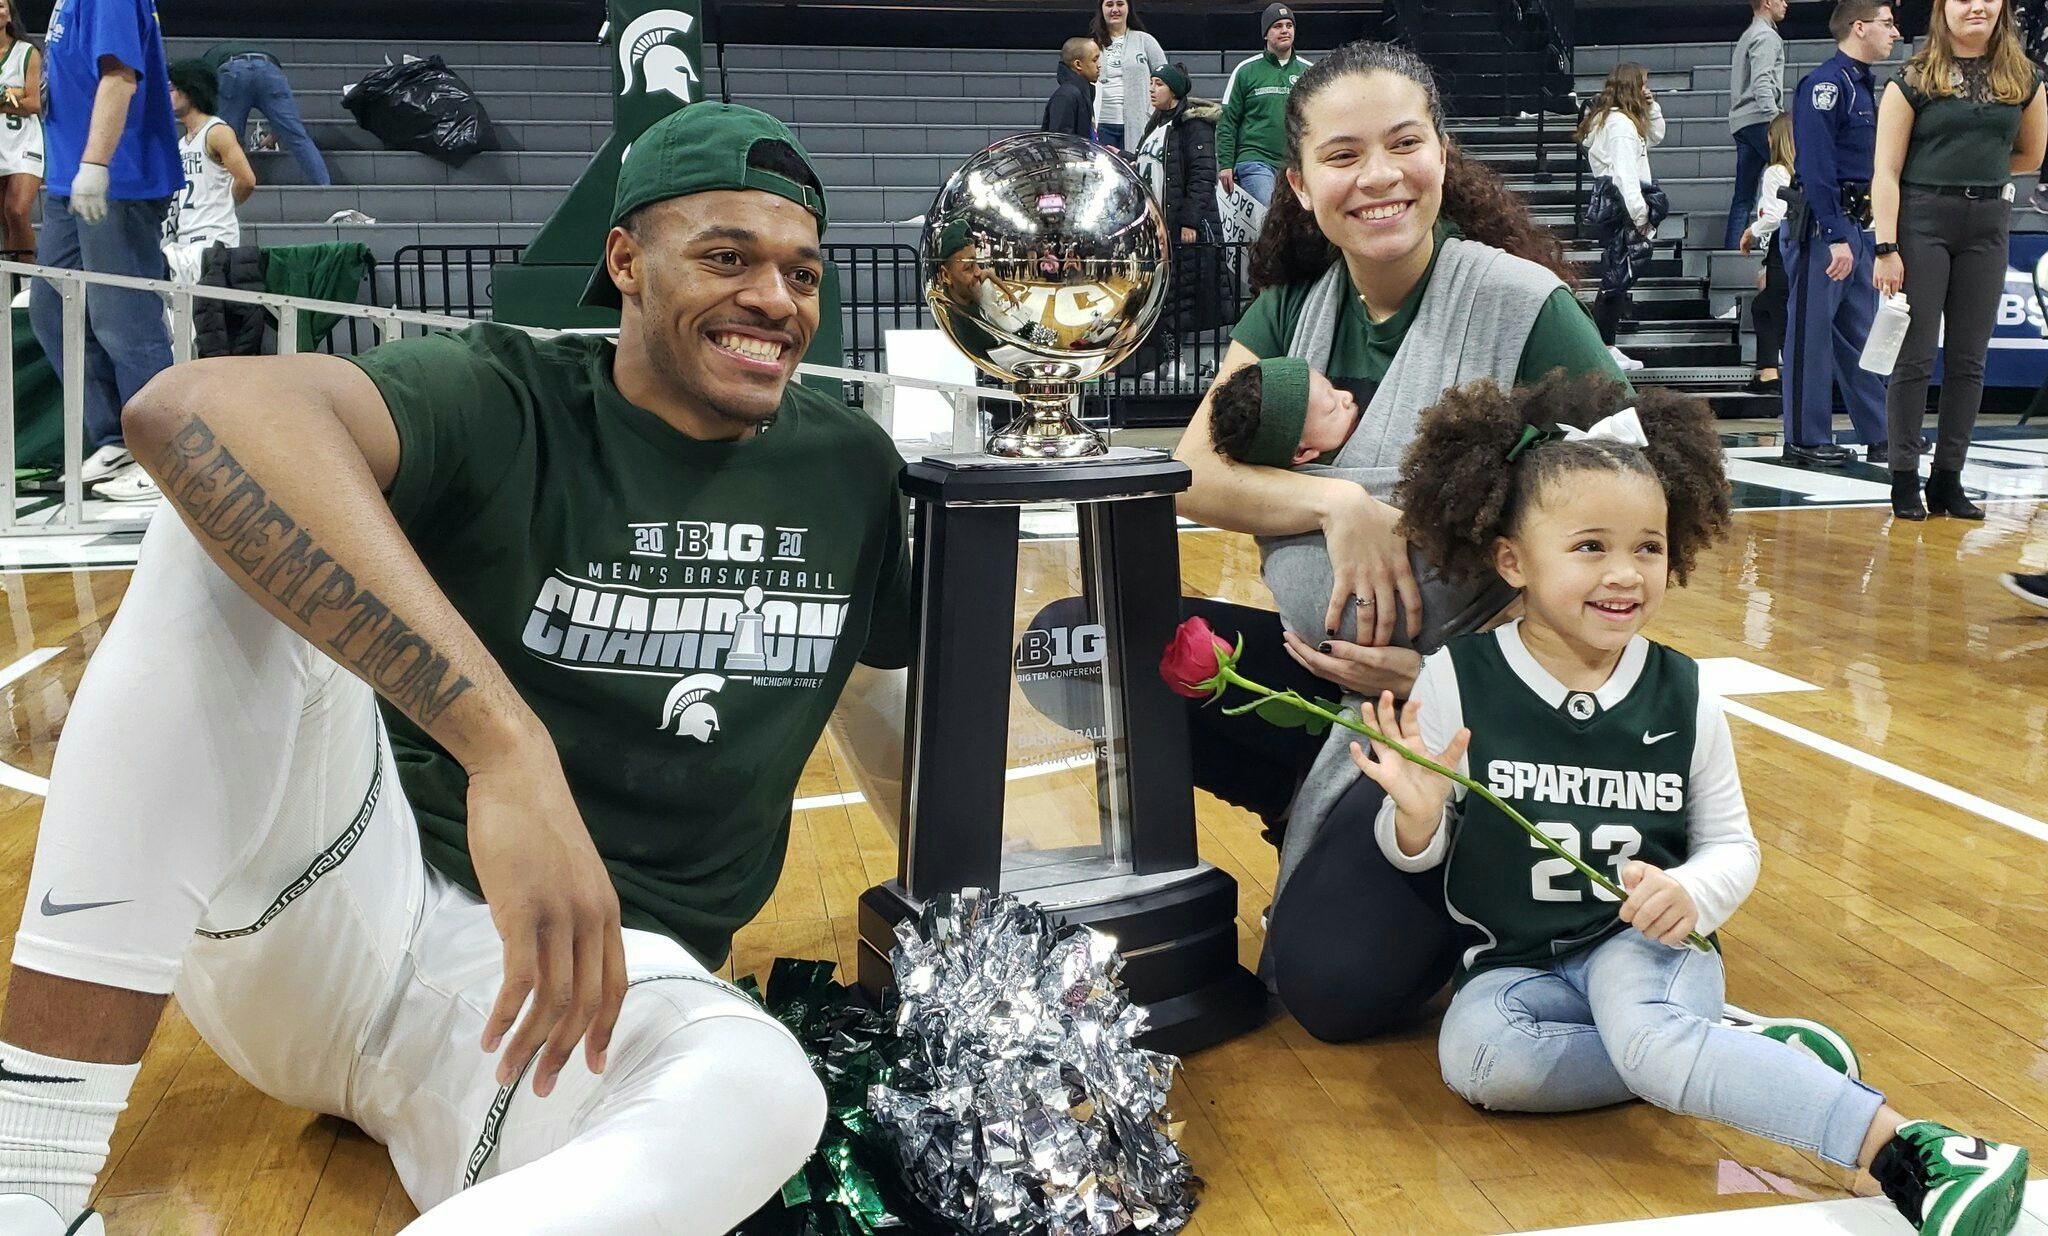 Pin By Ruthelise On Michigan State In 2020 Michigan State Michigan State Spartans Spartans